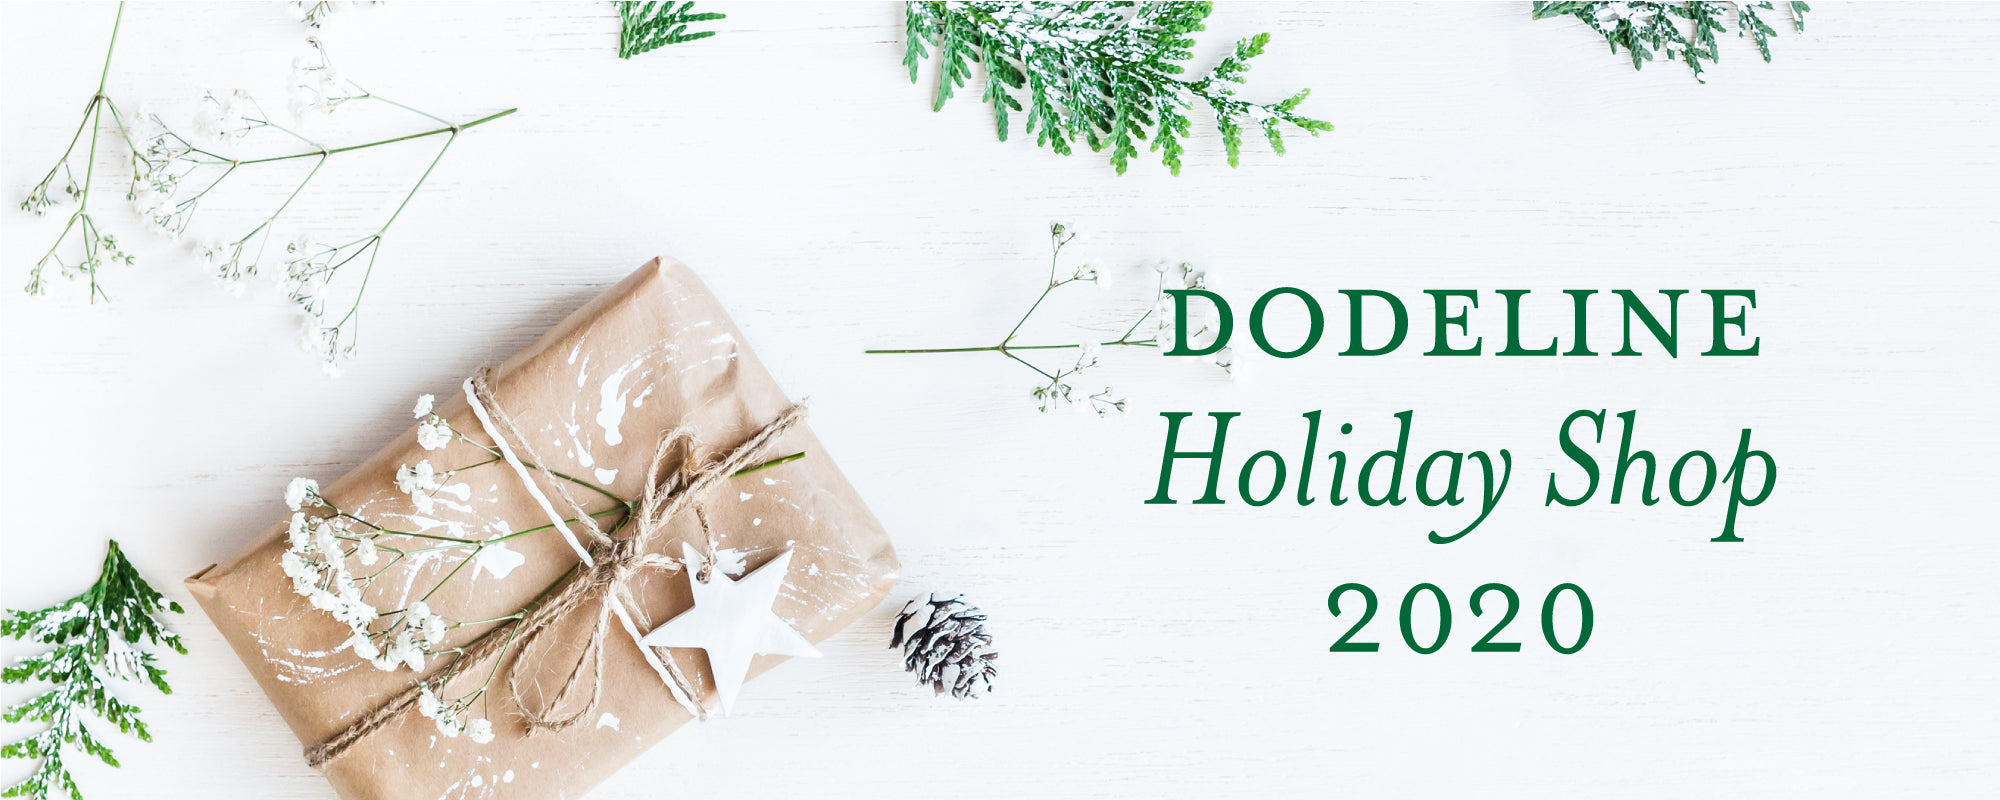 dodeline holiday shop 2020